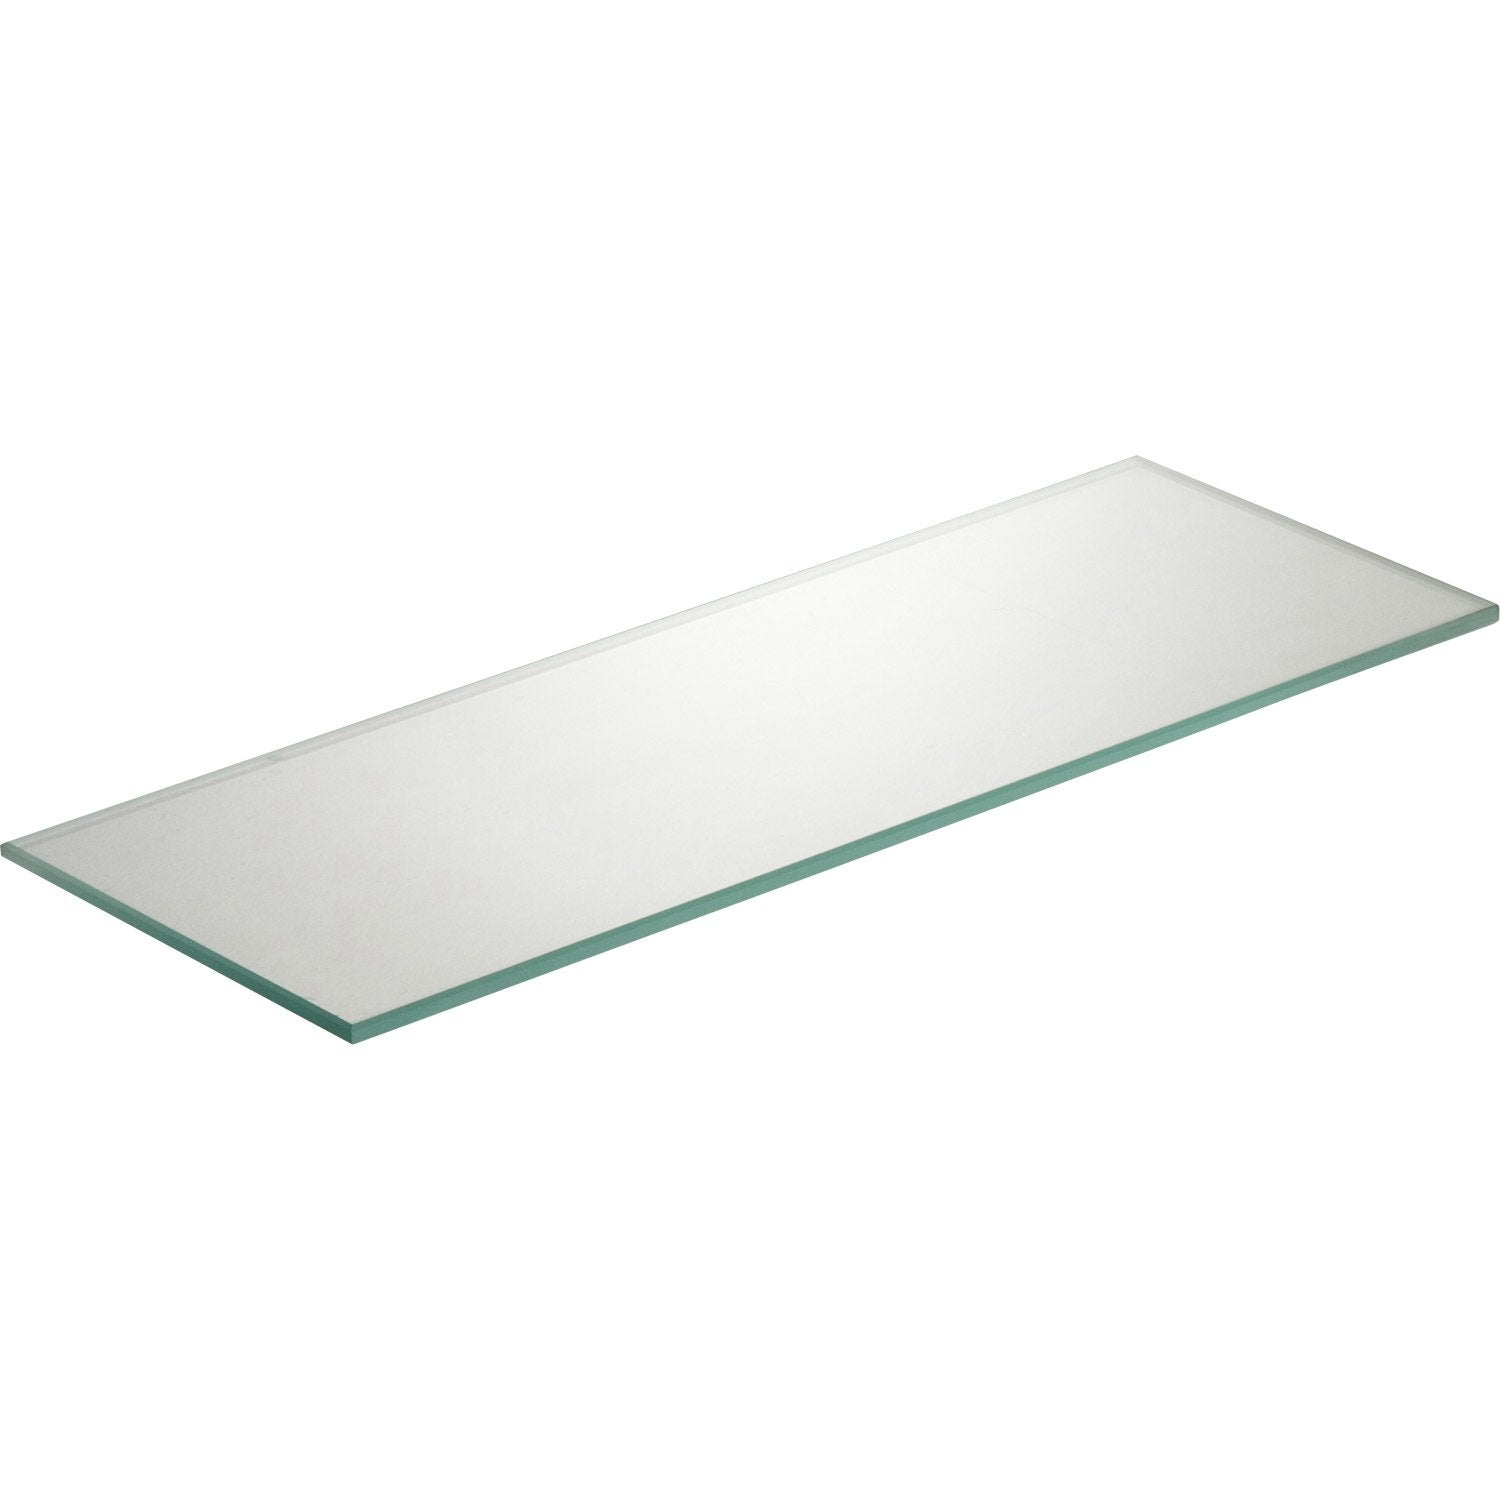 Etag re murale verre transparent l 40 x p 15 cm ep 6 mm for Plaque anti eclaboussure cuisine murale